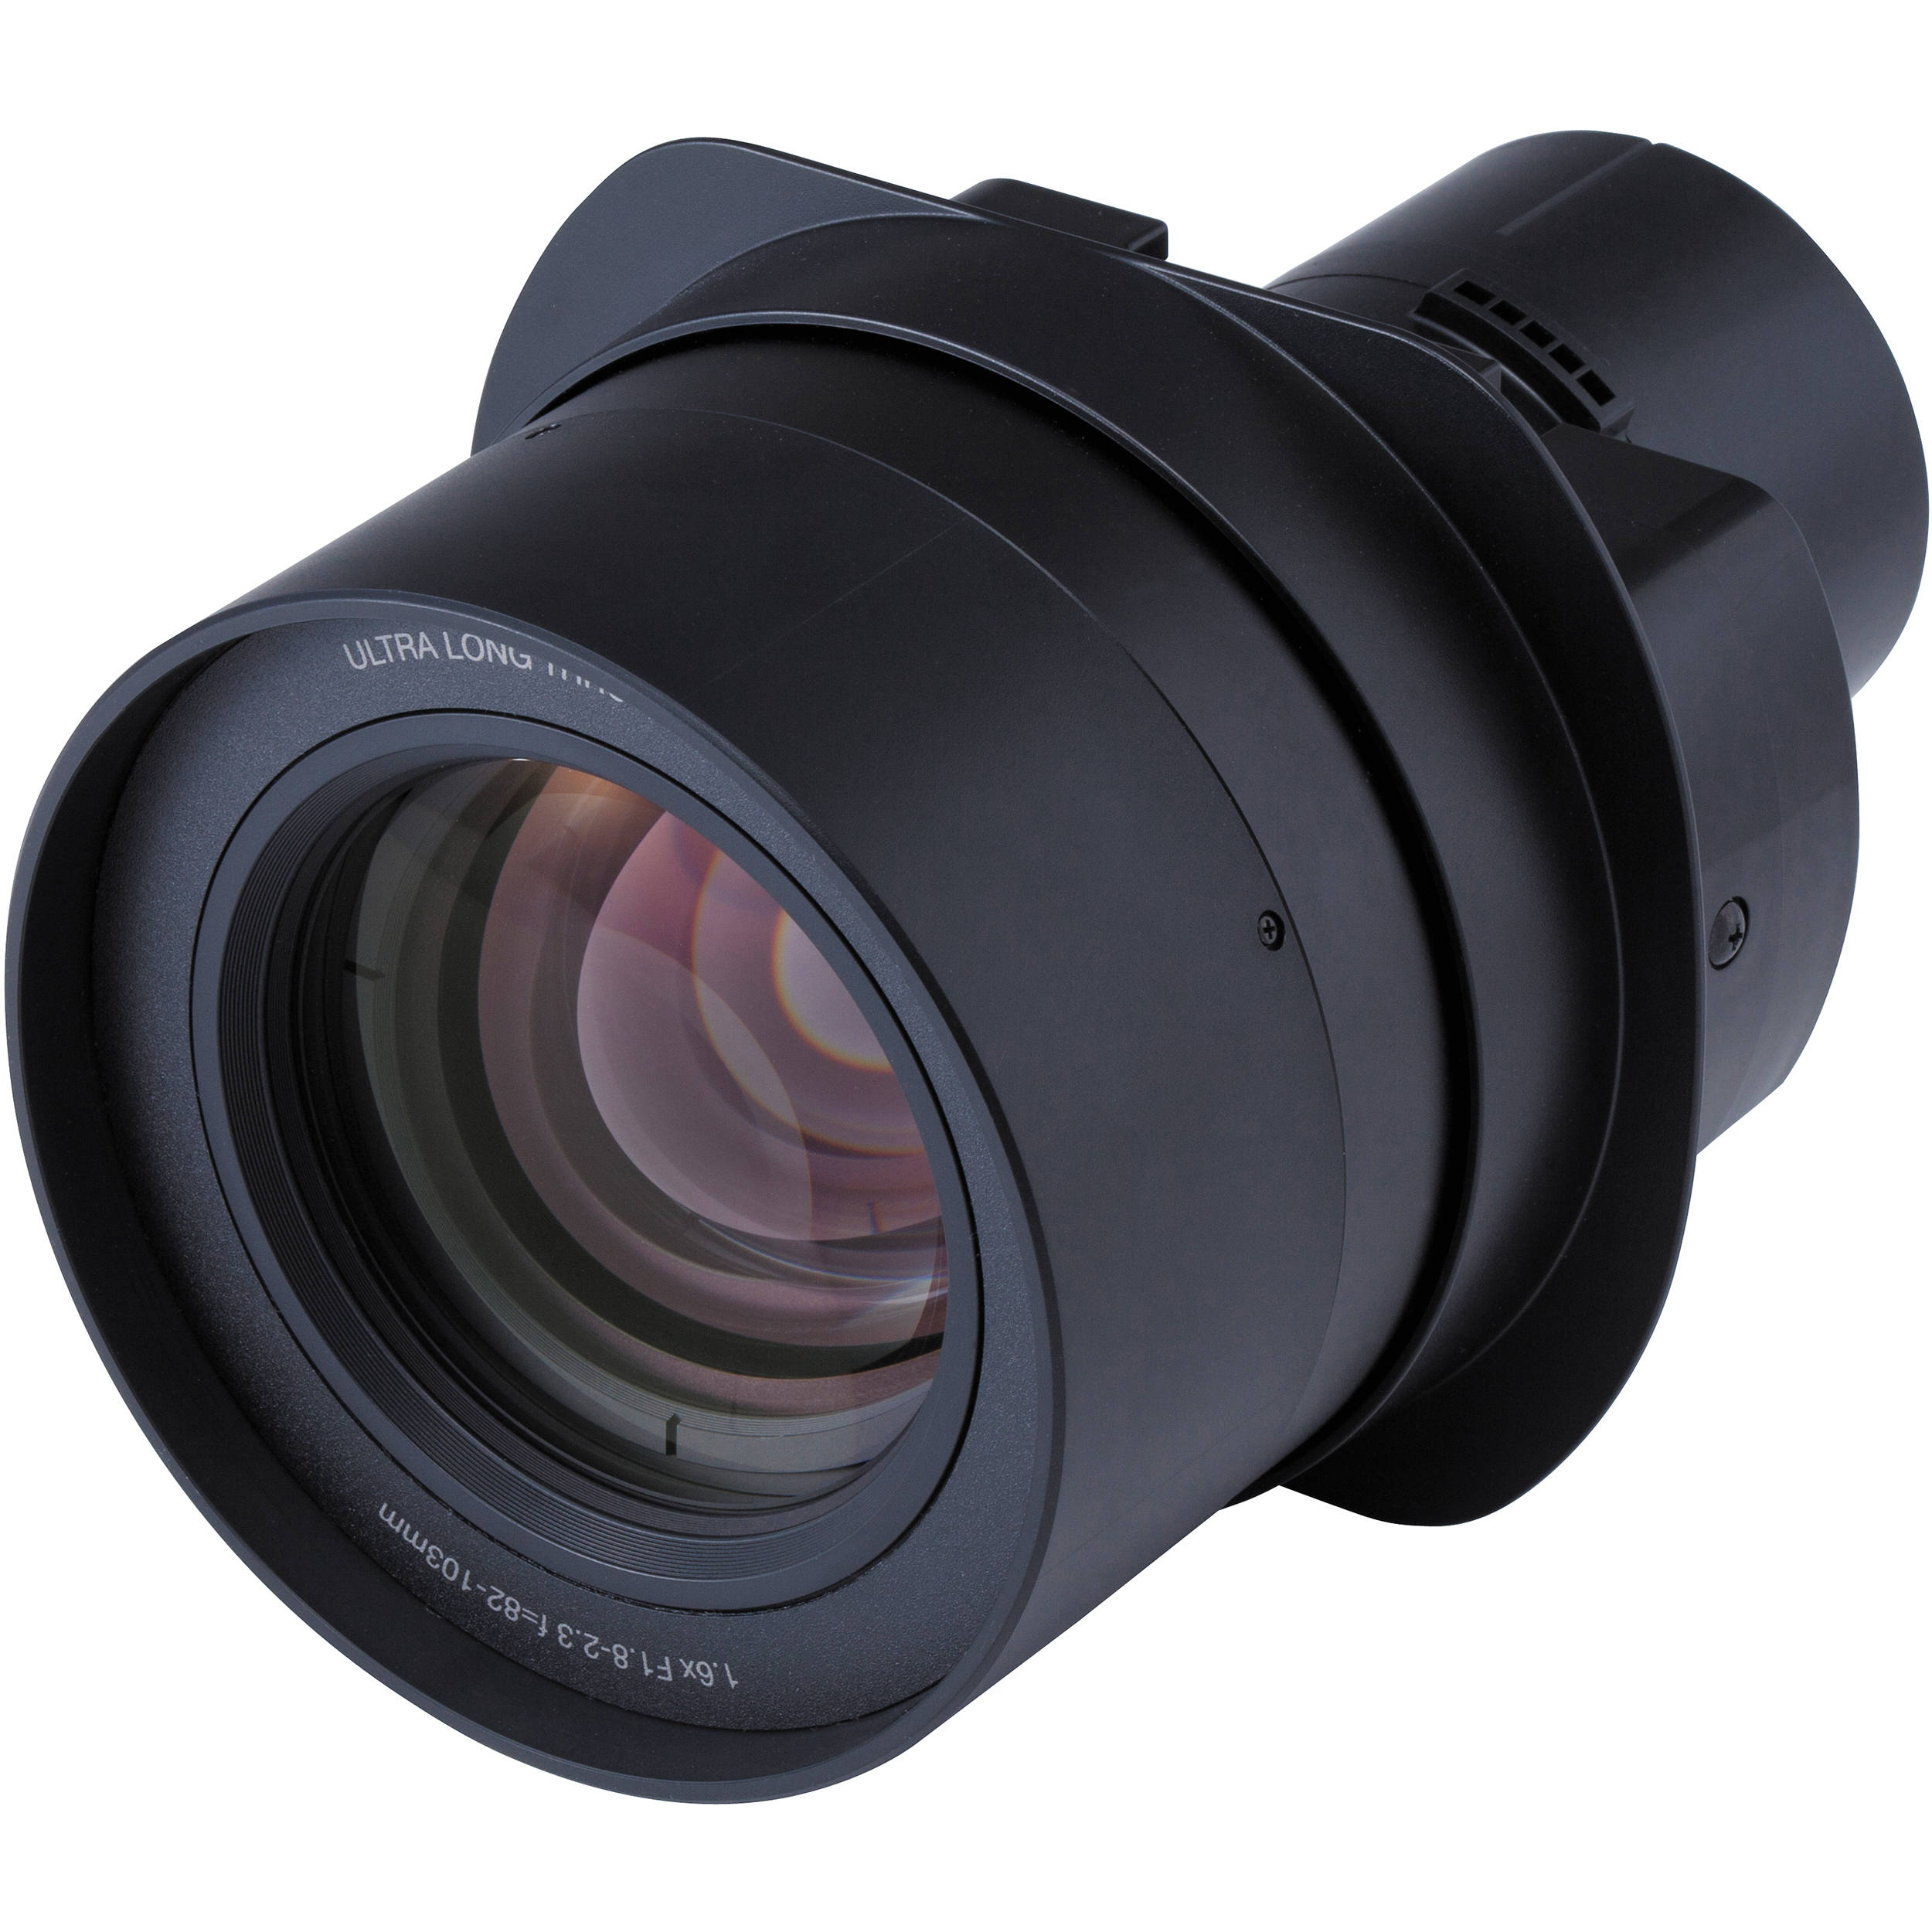 Hitachi UL906 Telephoto Zoom Lens - 82mm-130mm - F/1.8-2.3